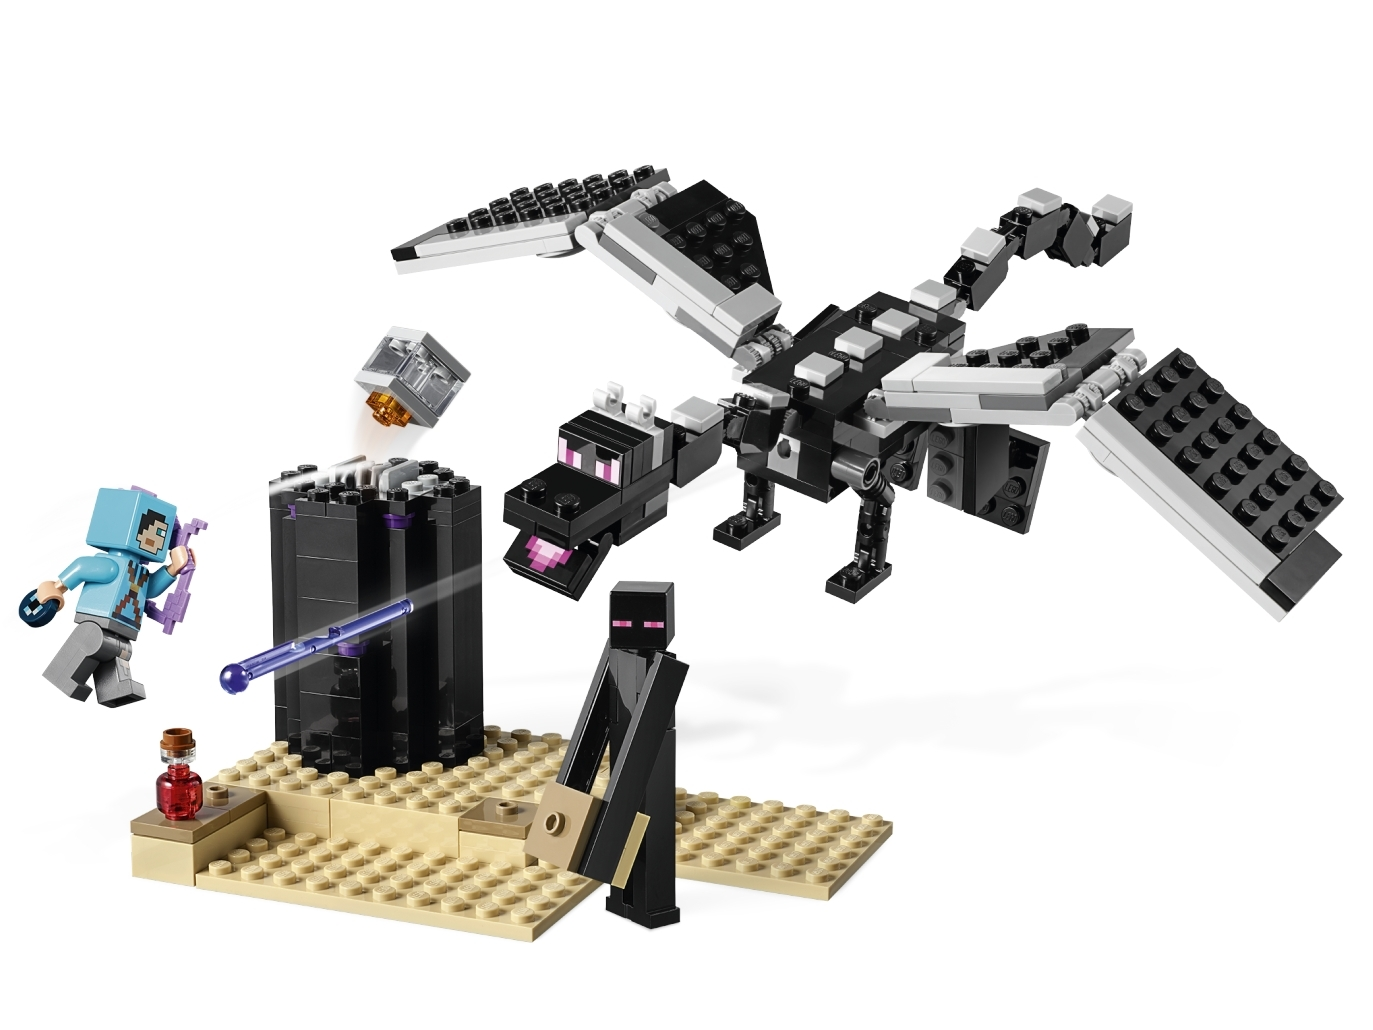 The End Battle 21151 Minecraft Buy Online At The Official Lego Shop Au